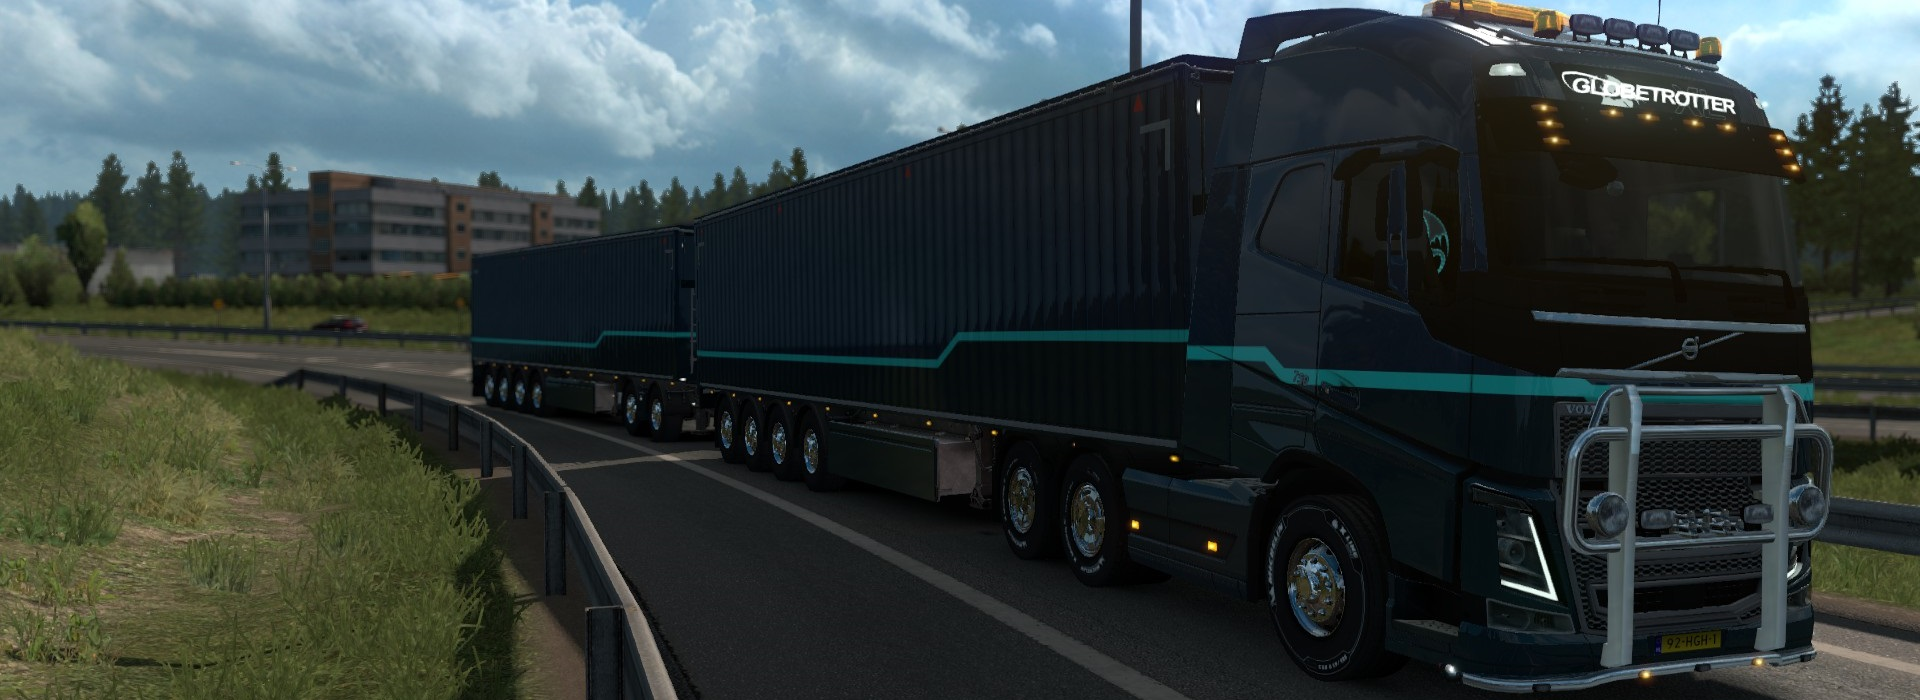 Euro Truck Simulator 2 - Can you handle this length?